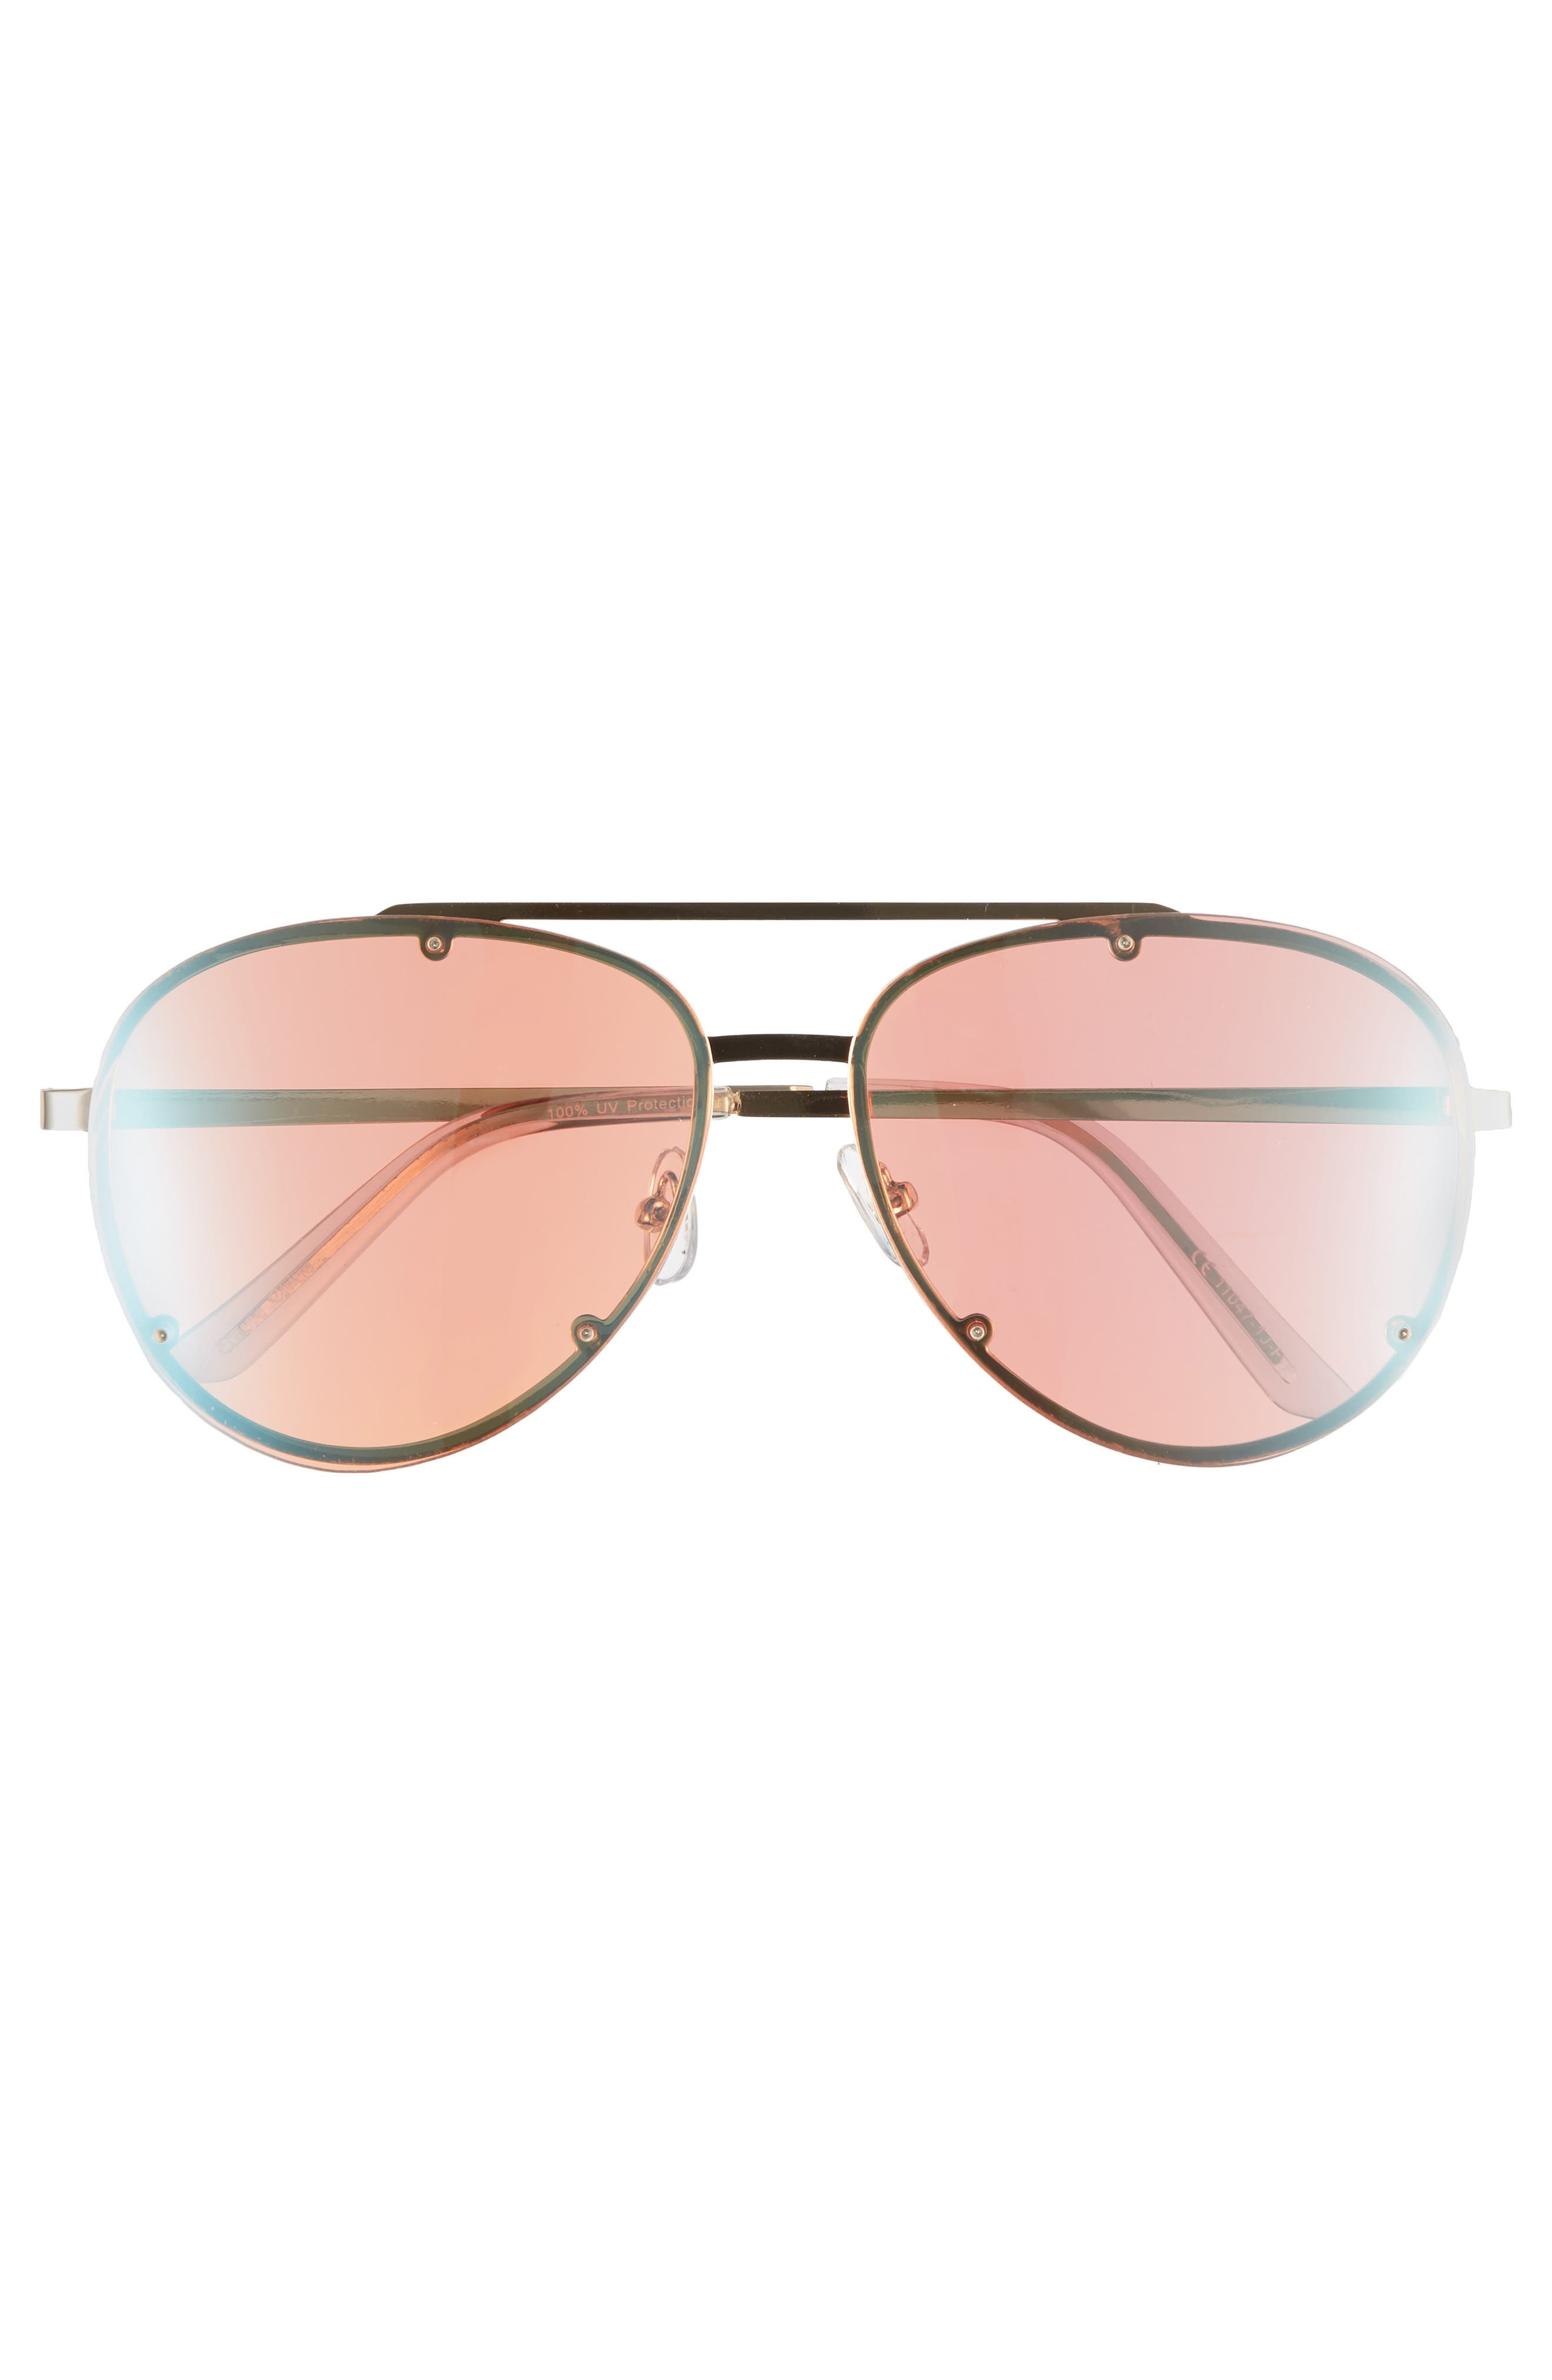 59mm Aviator Sunglasses,                             Alternate thumbnail 3, color,                             Multi